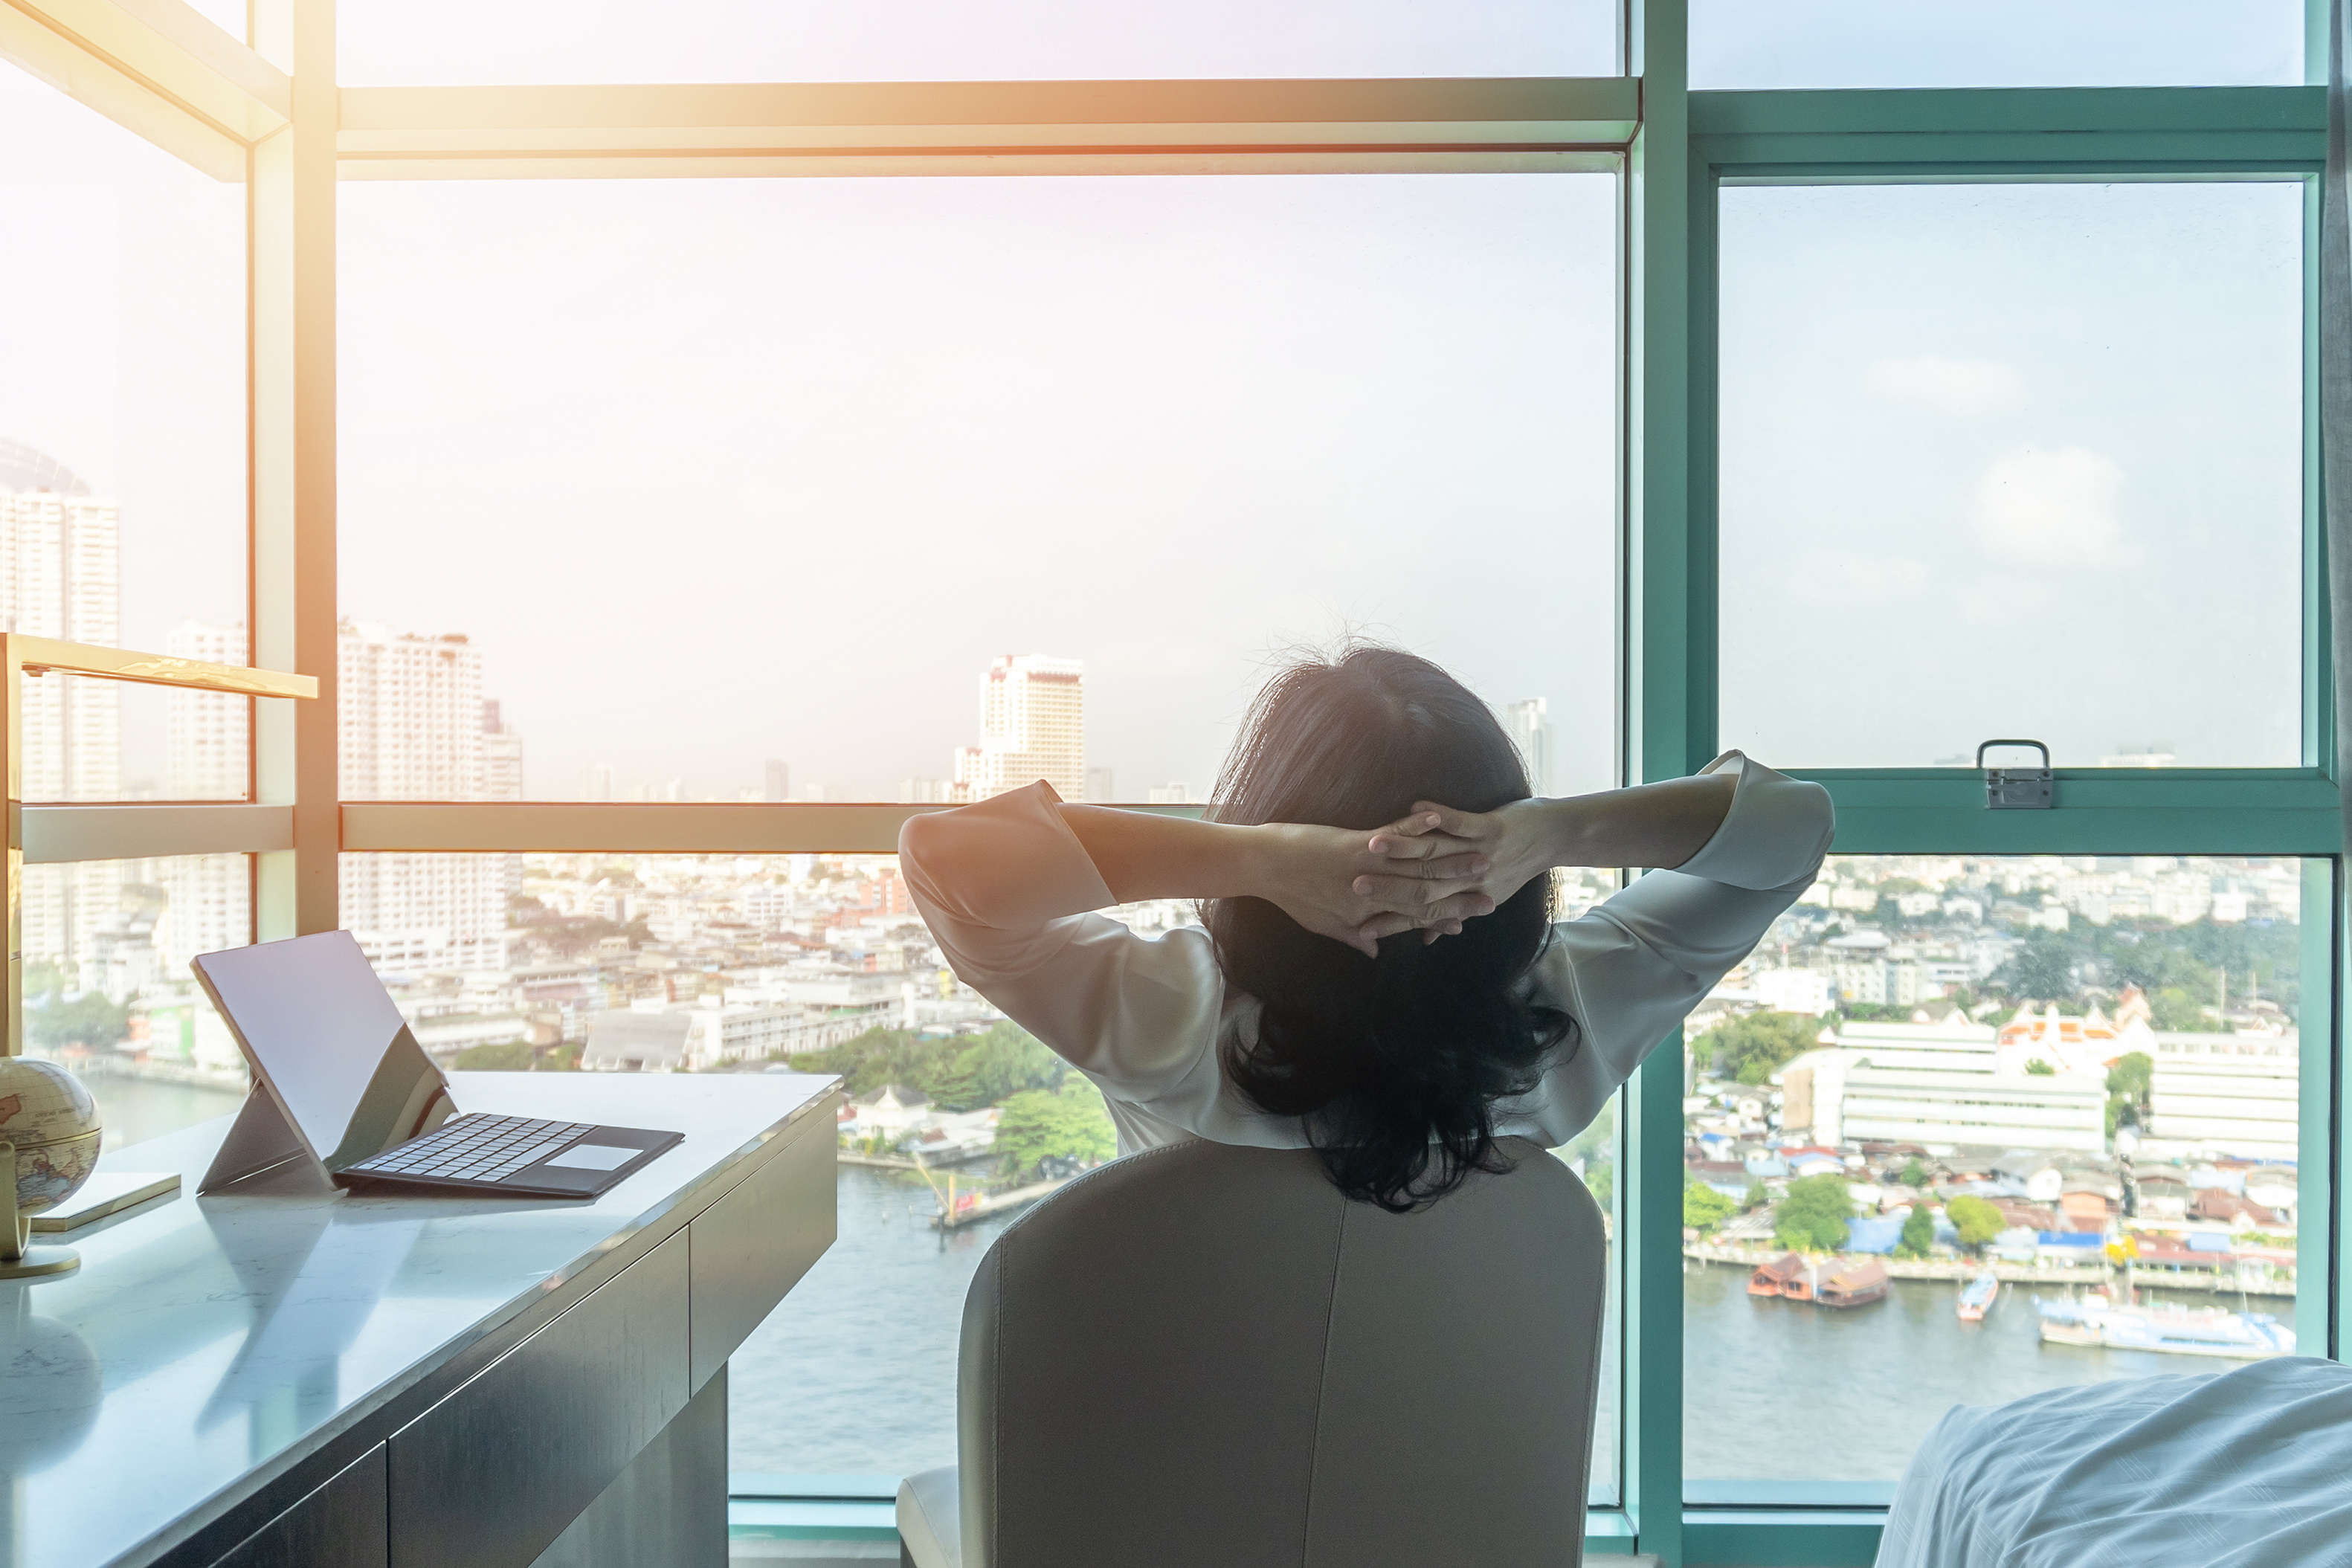 A woman relaxes in an office chair while looking out the window